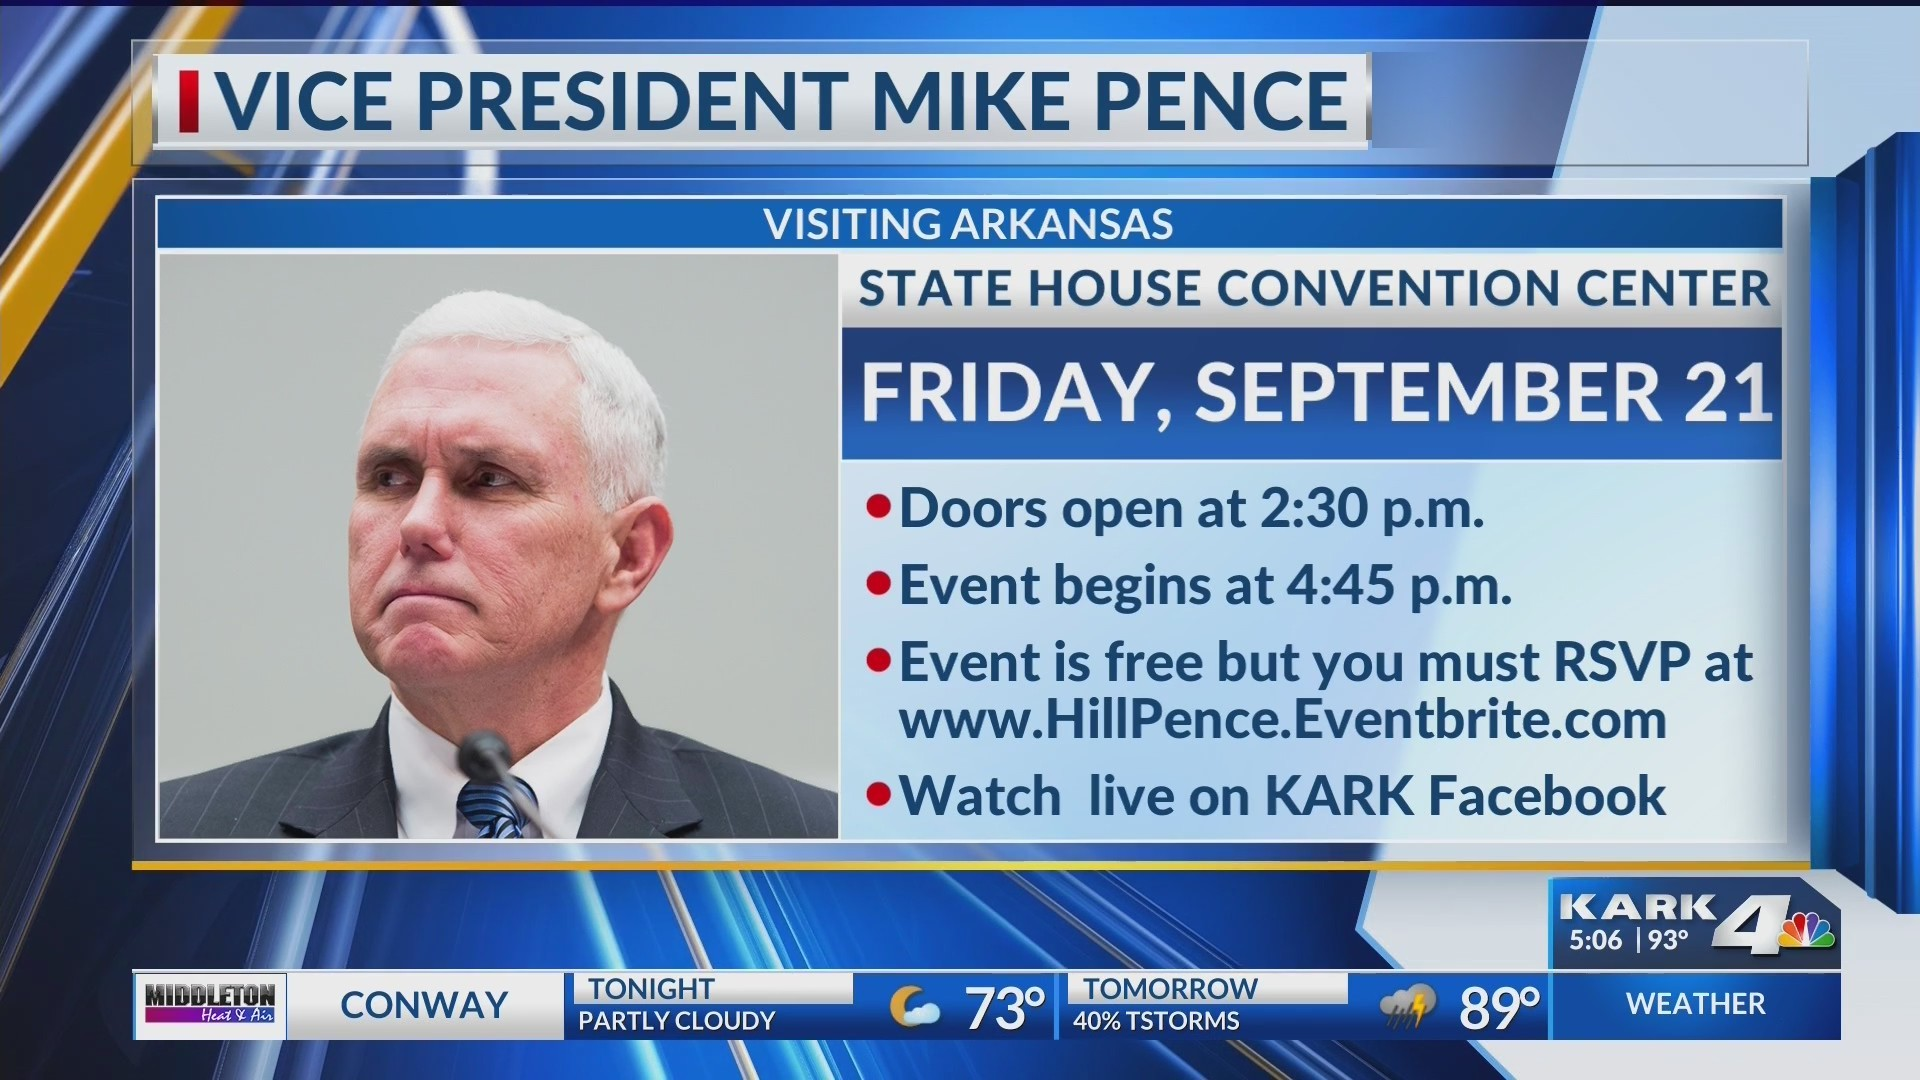 Vice_President_Mike_Pence_to_Visit_Arkan_0_20180920225710